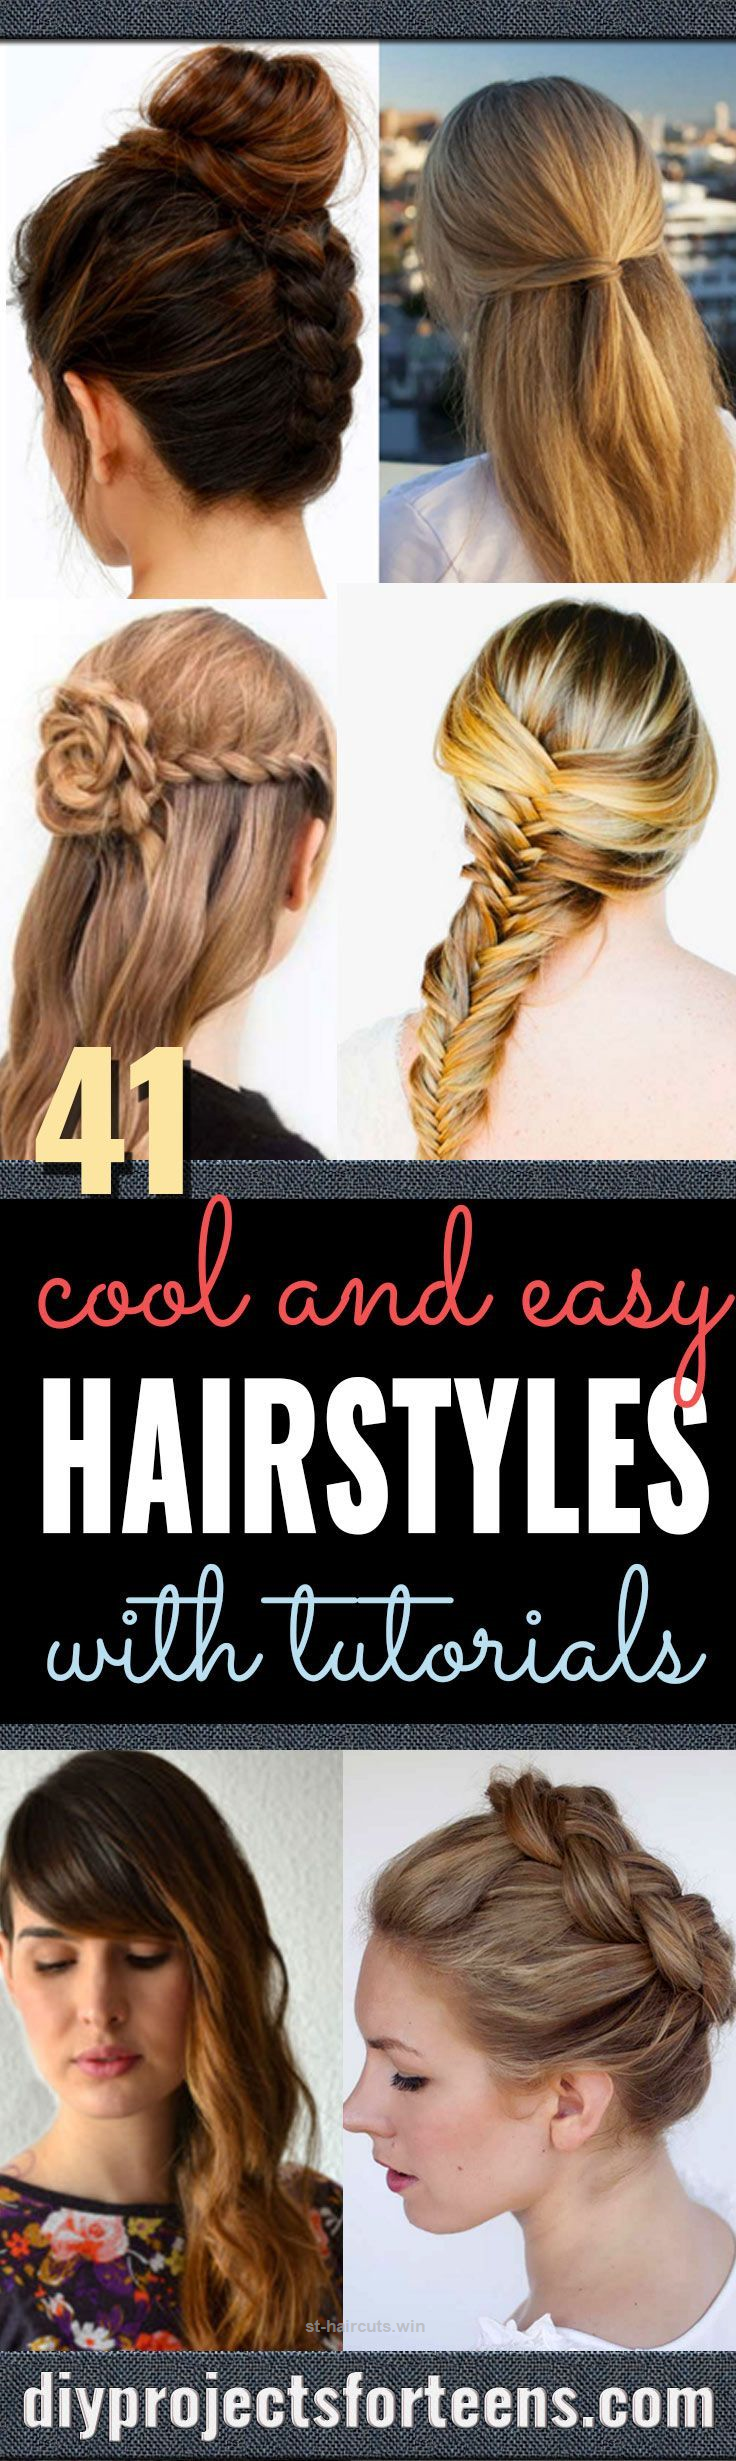 Outstanding cool and easy diy hairstyles u quick and easy ideas for